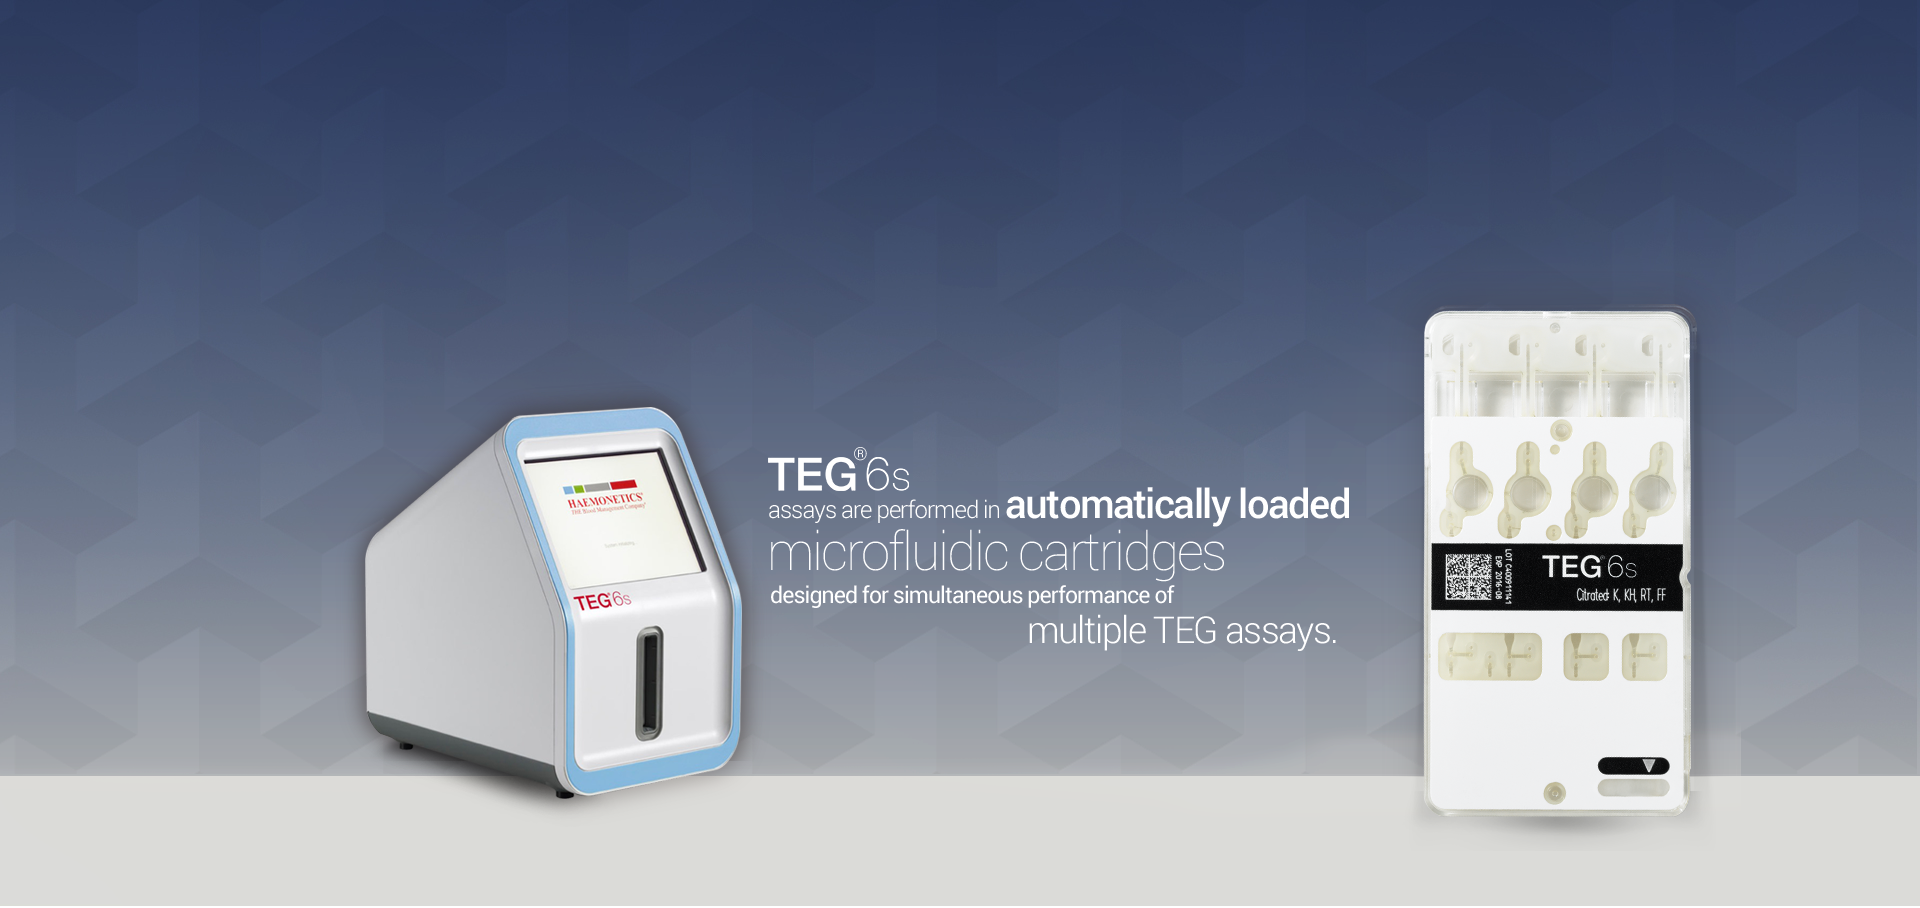 TEG 6s Hemostasis Analyzer